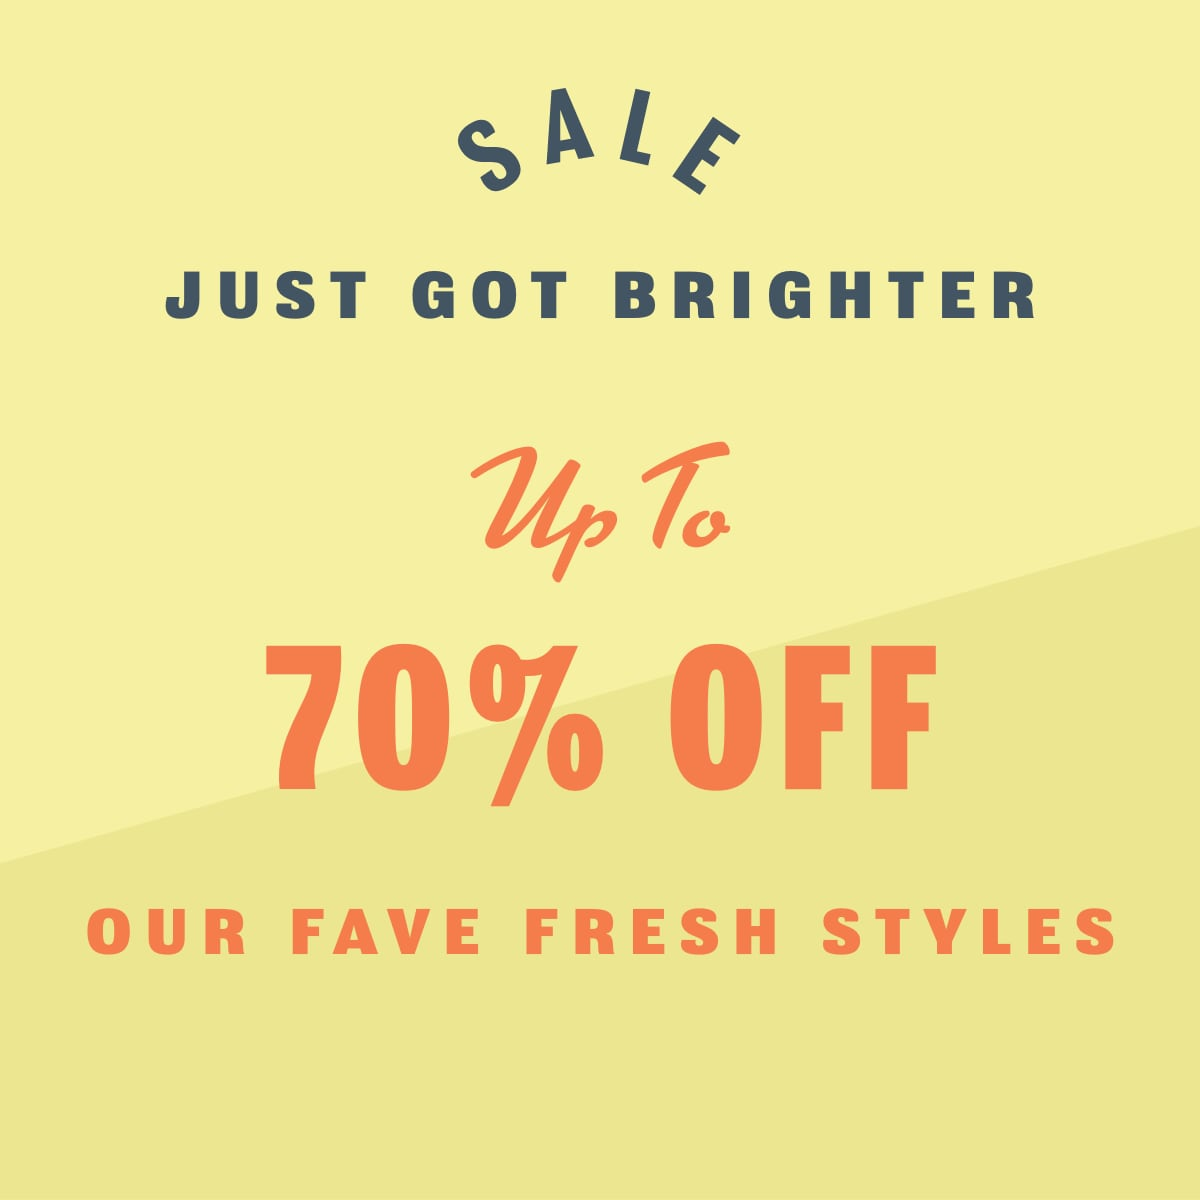 sale just got brighter. up to 70% off our fave fresh styles.